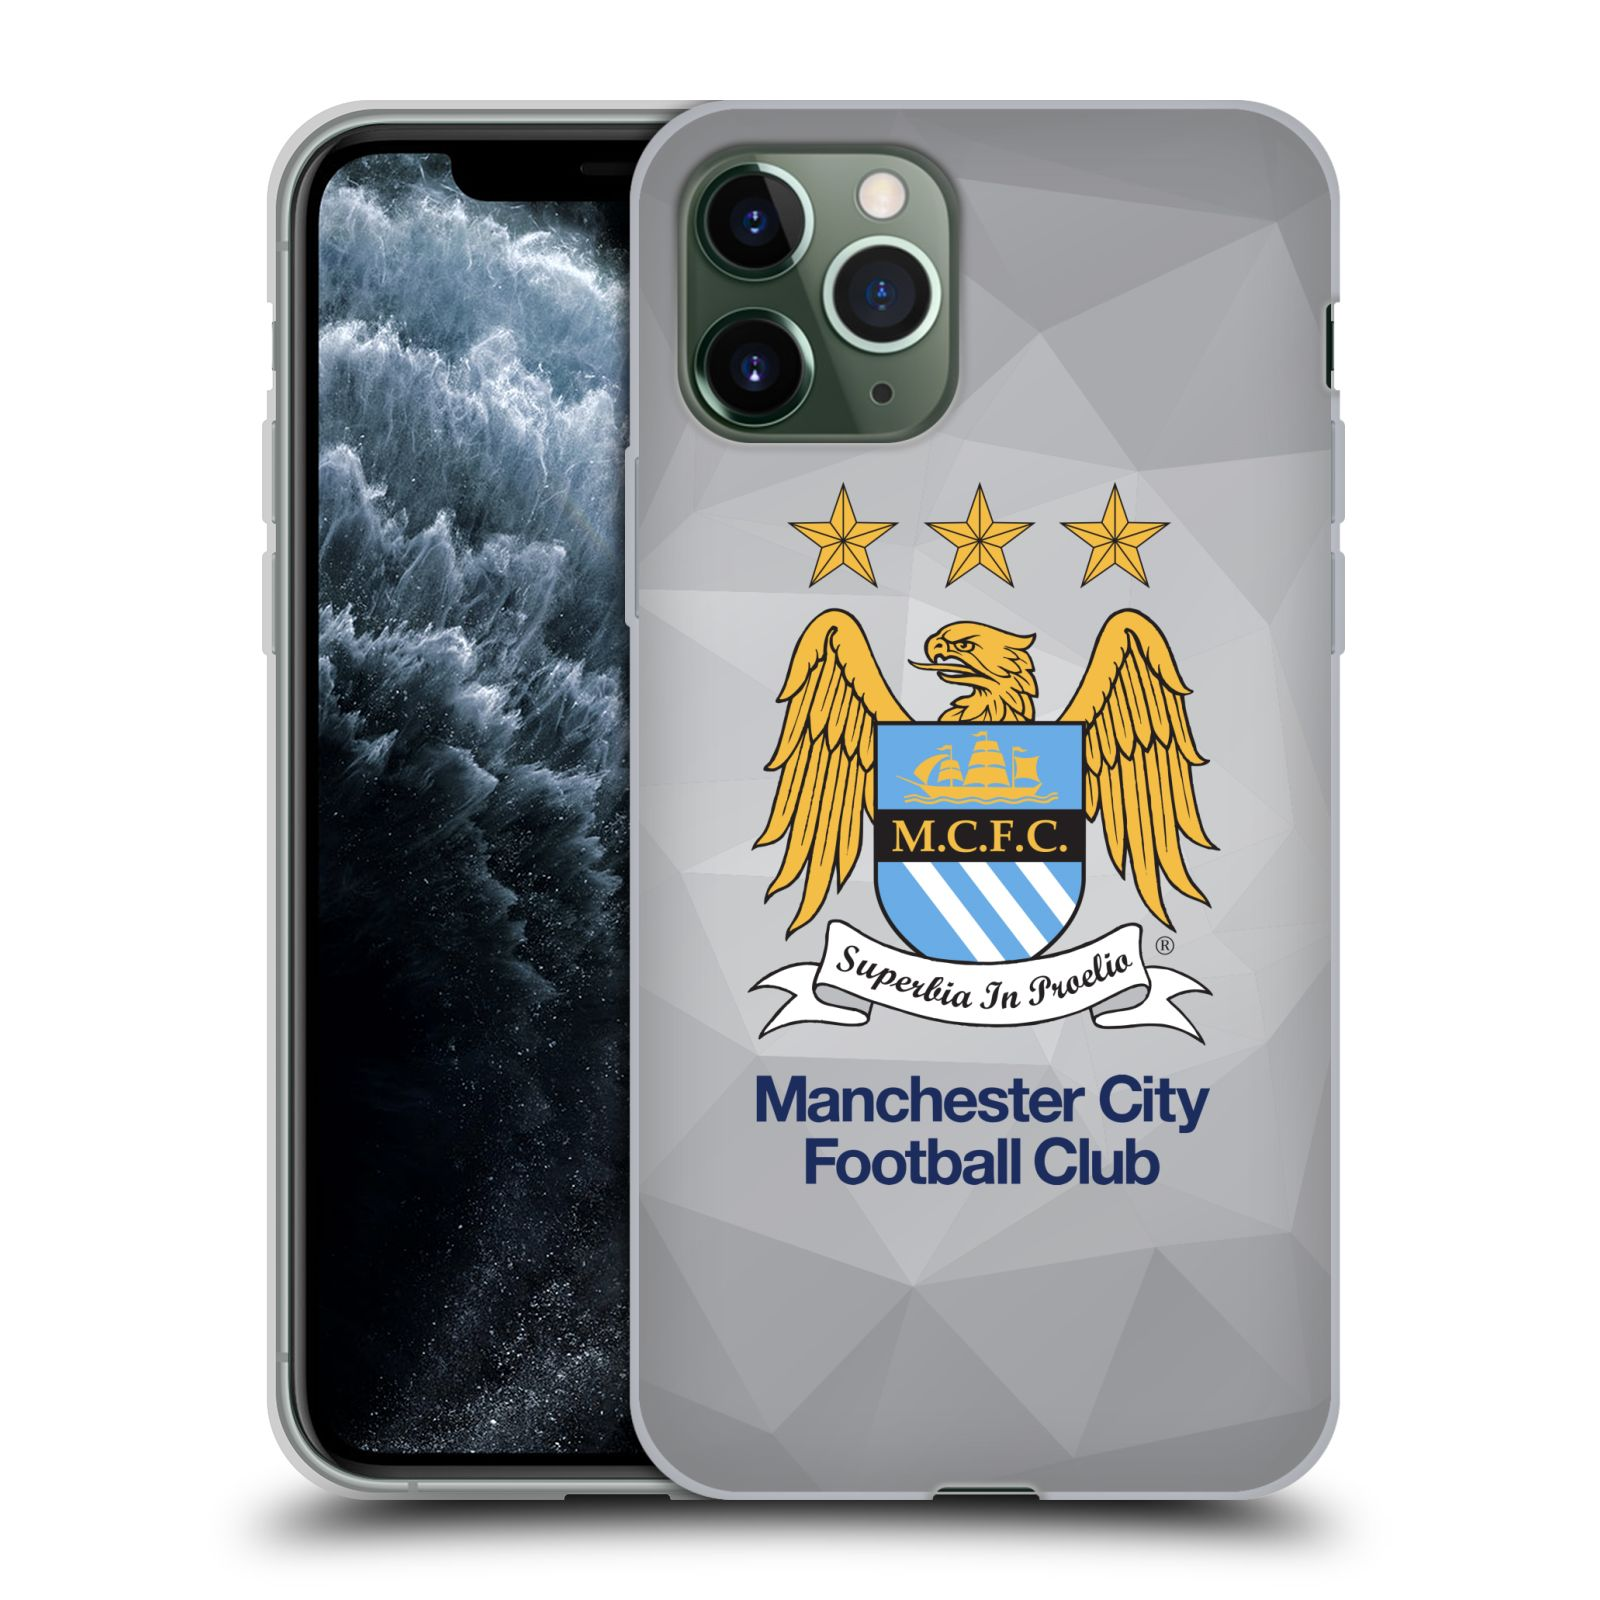 iphone 6s gumovy kryt | Silikonové pouzdro na mobil Apple iPhone 11 Pro - Head Case - Manchester City FC - Football Club